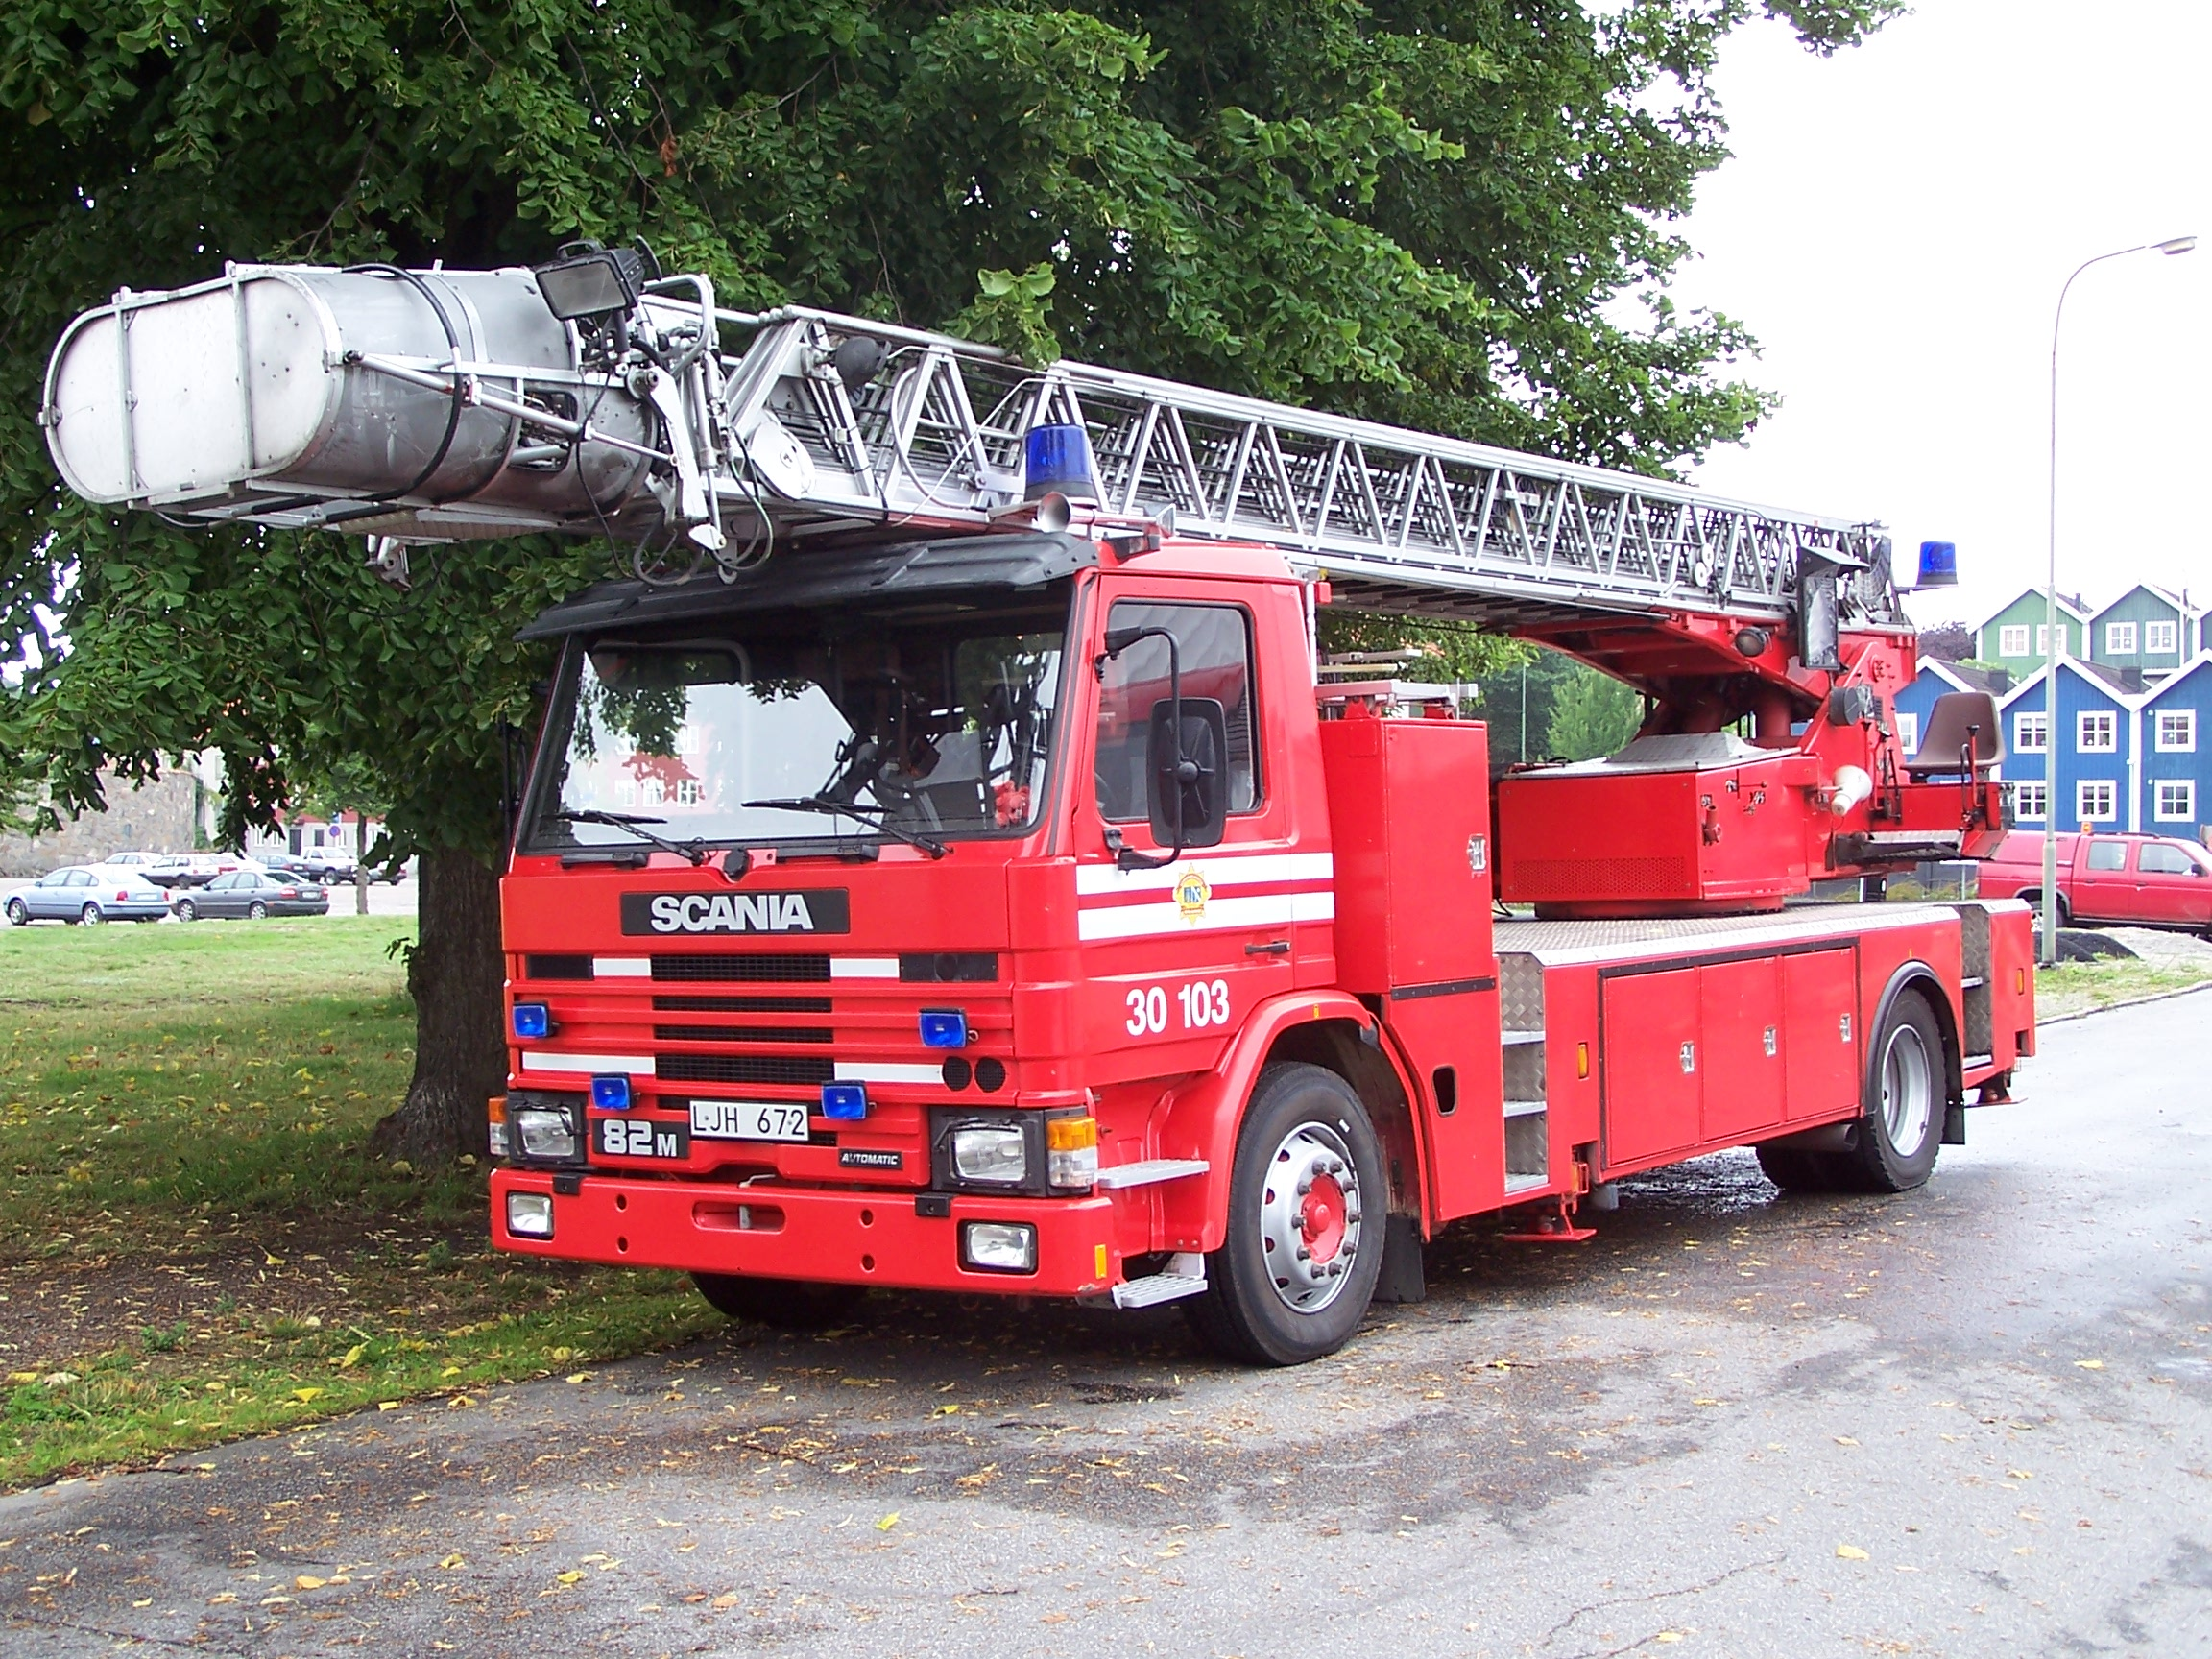 Vehicles   Scania Fire Truck Scania Truck Fire Truck Wallpaper 2304x1728